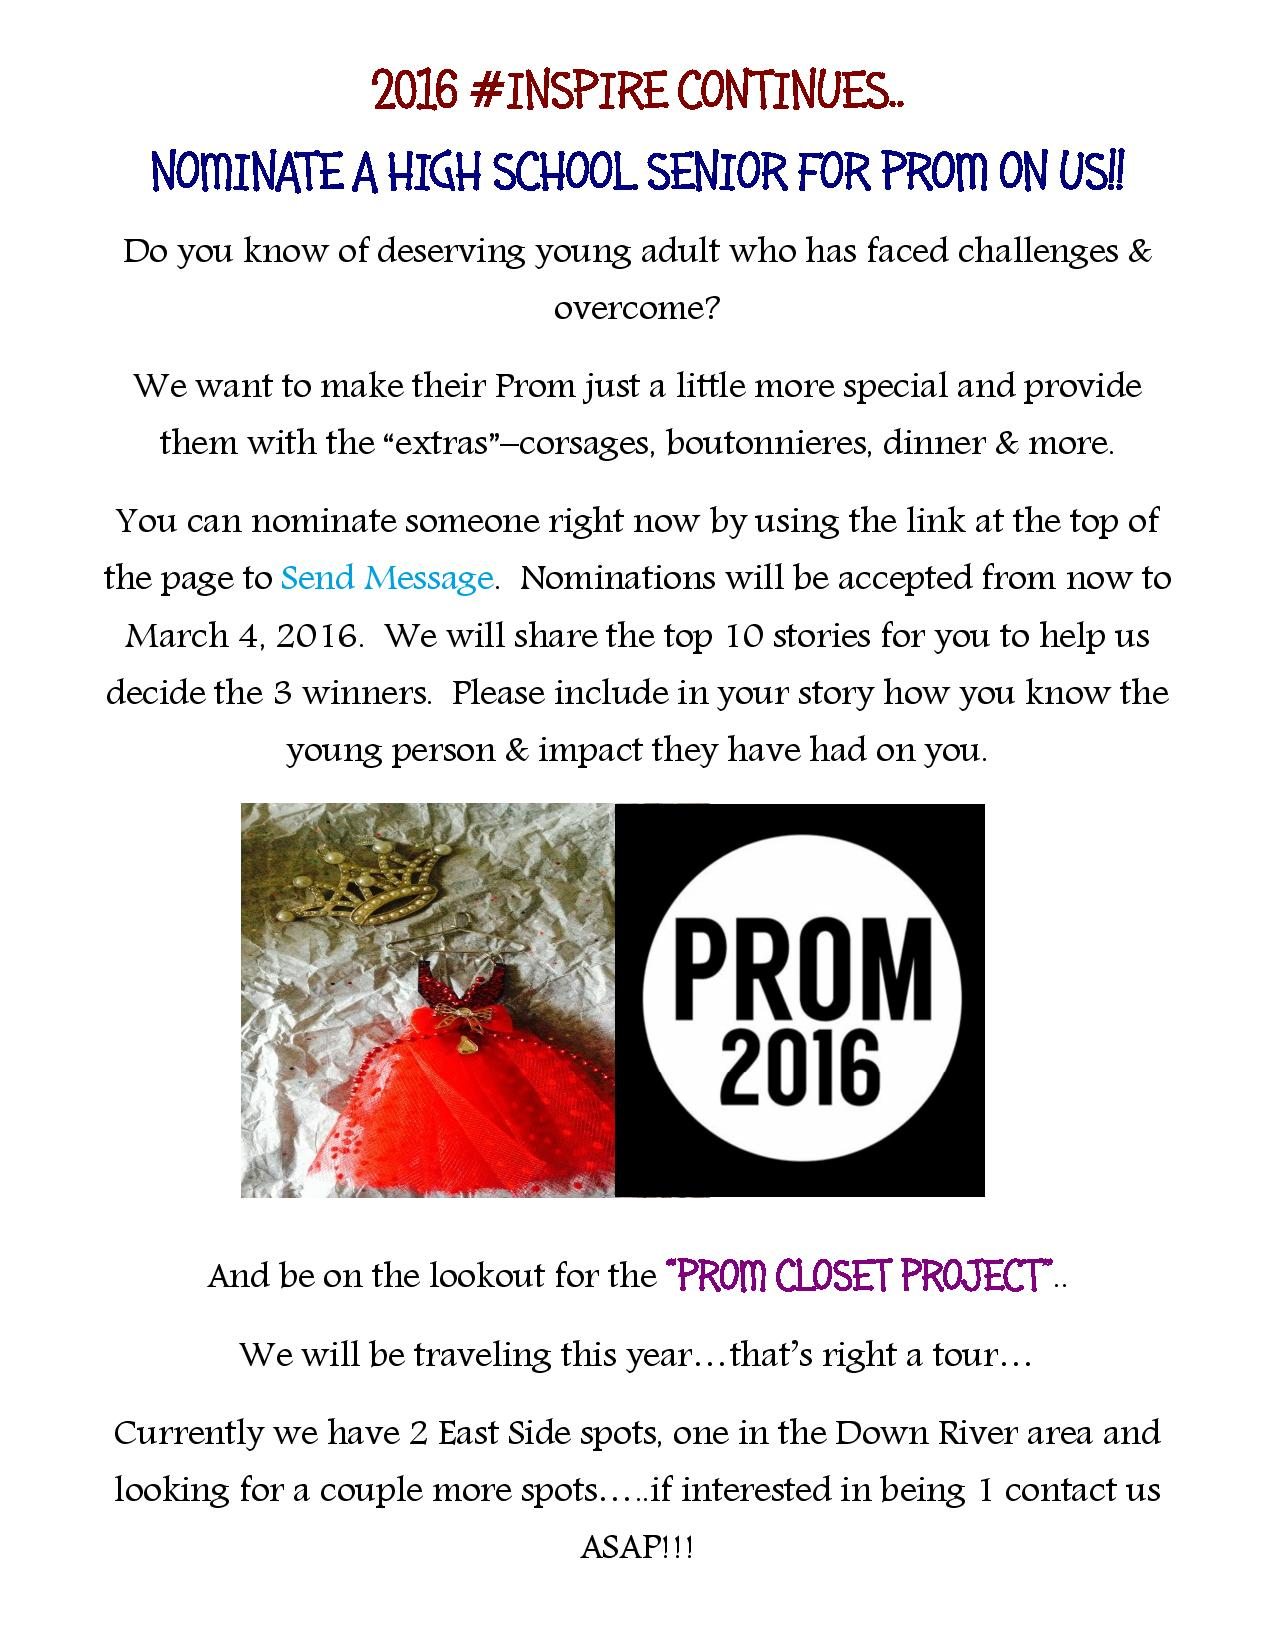 prom nominate 2016 info-page-001